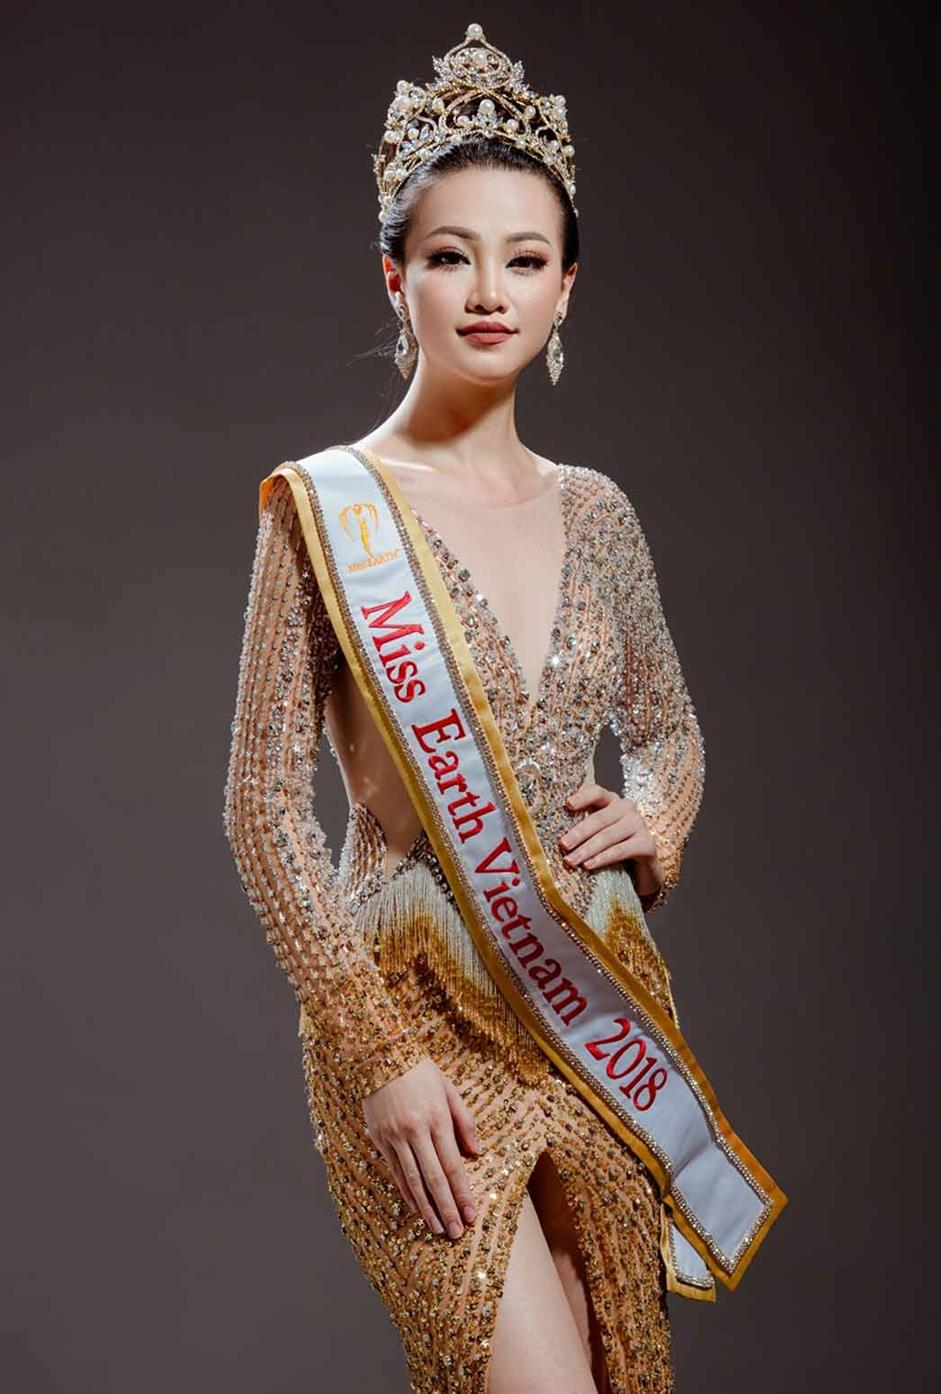 Nguy?n Phuong Khánh was crowned Miss Earth 2018